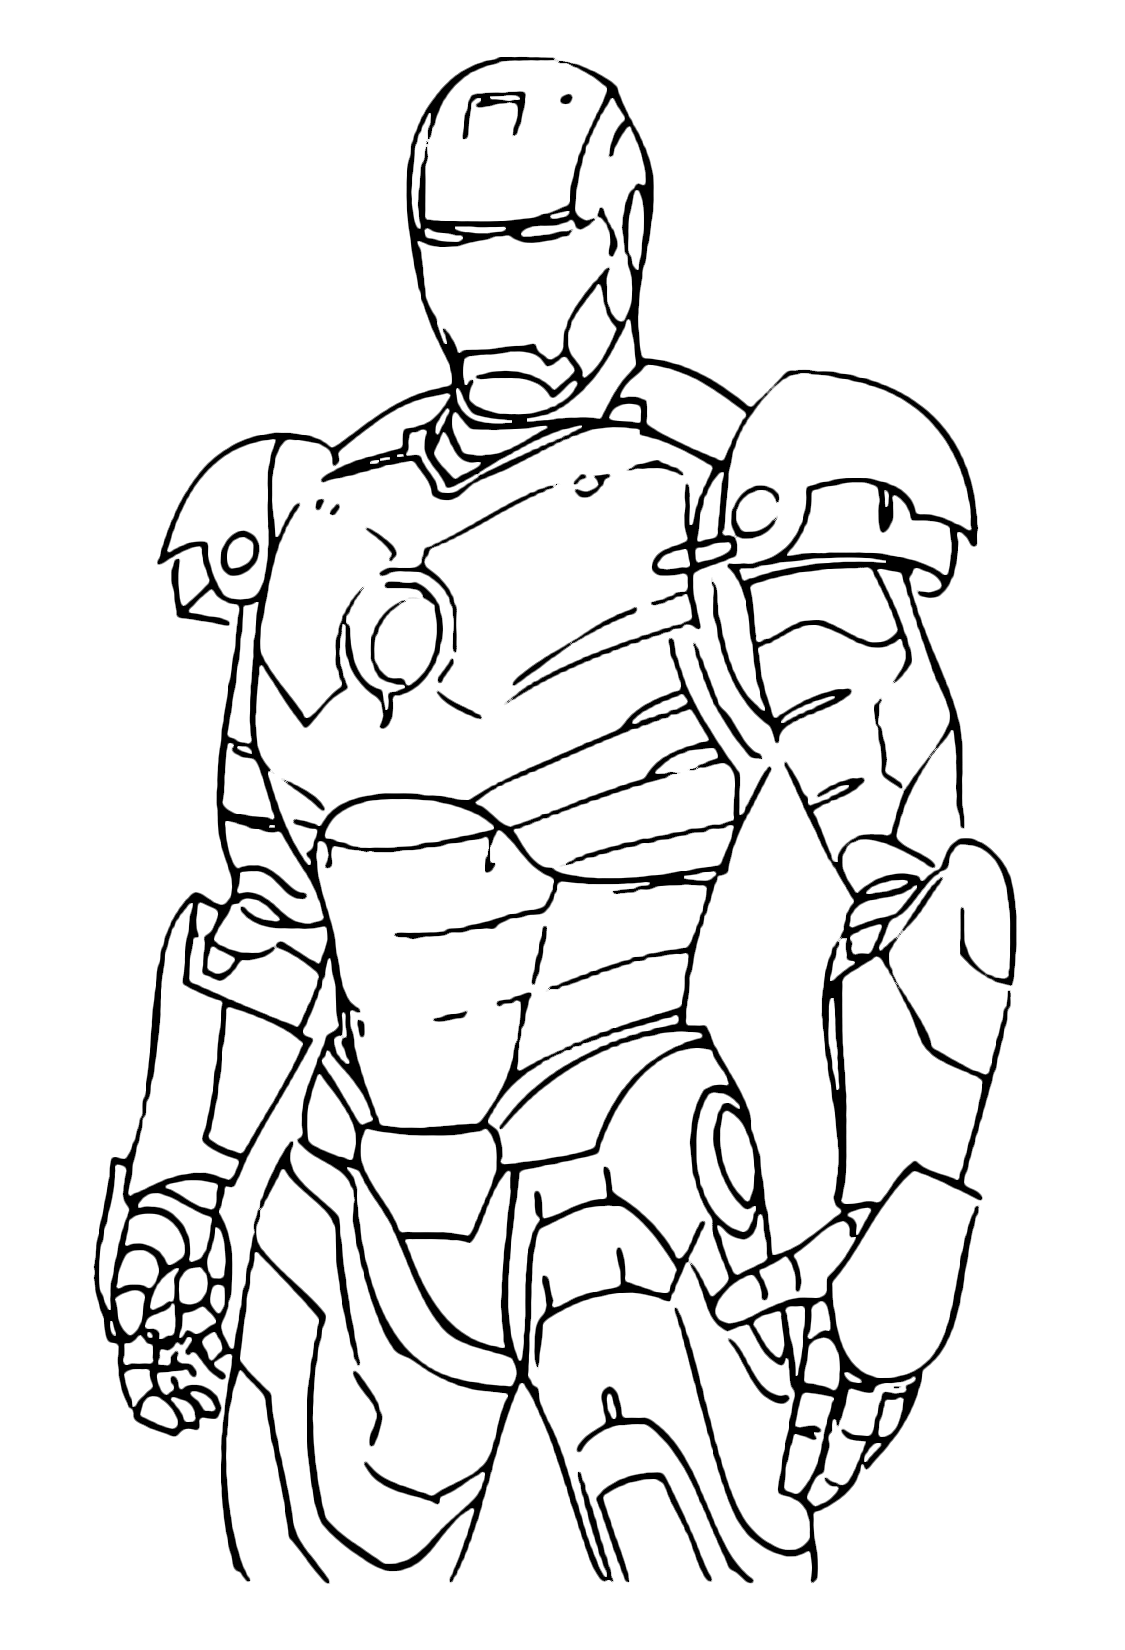 Disegni da colorare e stampare iron man for Disegni da colorare iron man